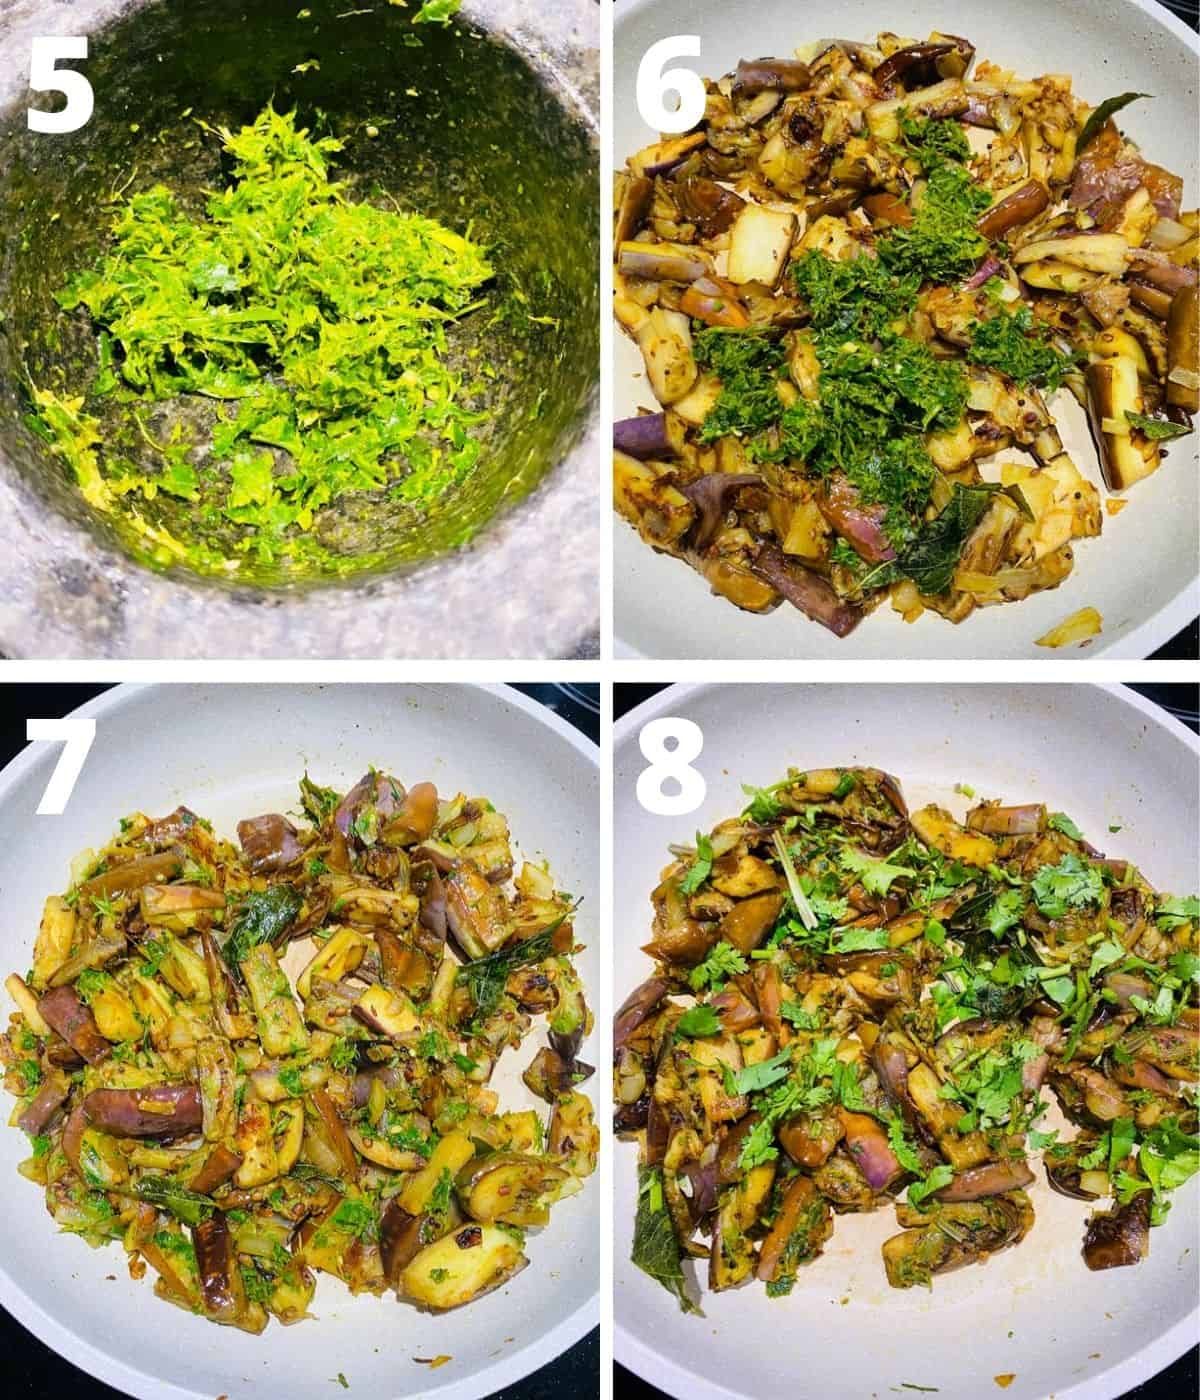 This is a 4 picture collage showing last four steps of making brinjal fry, which are making spice paste, adding it to the curry, cook for few mins then garnish and turn off heat.